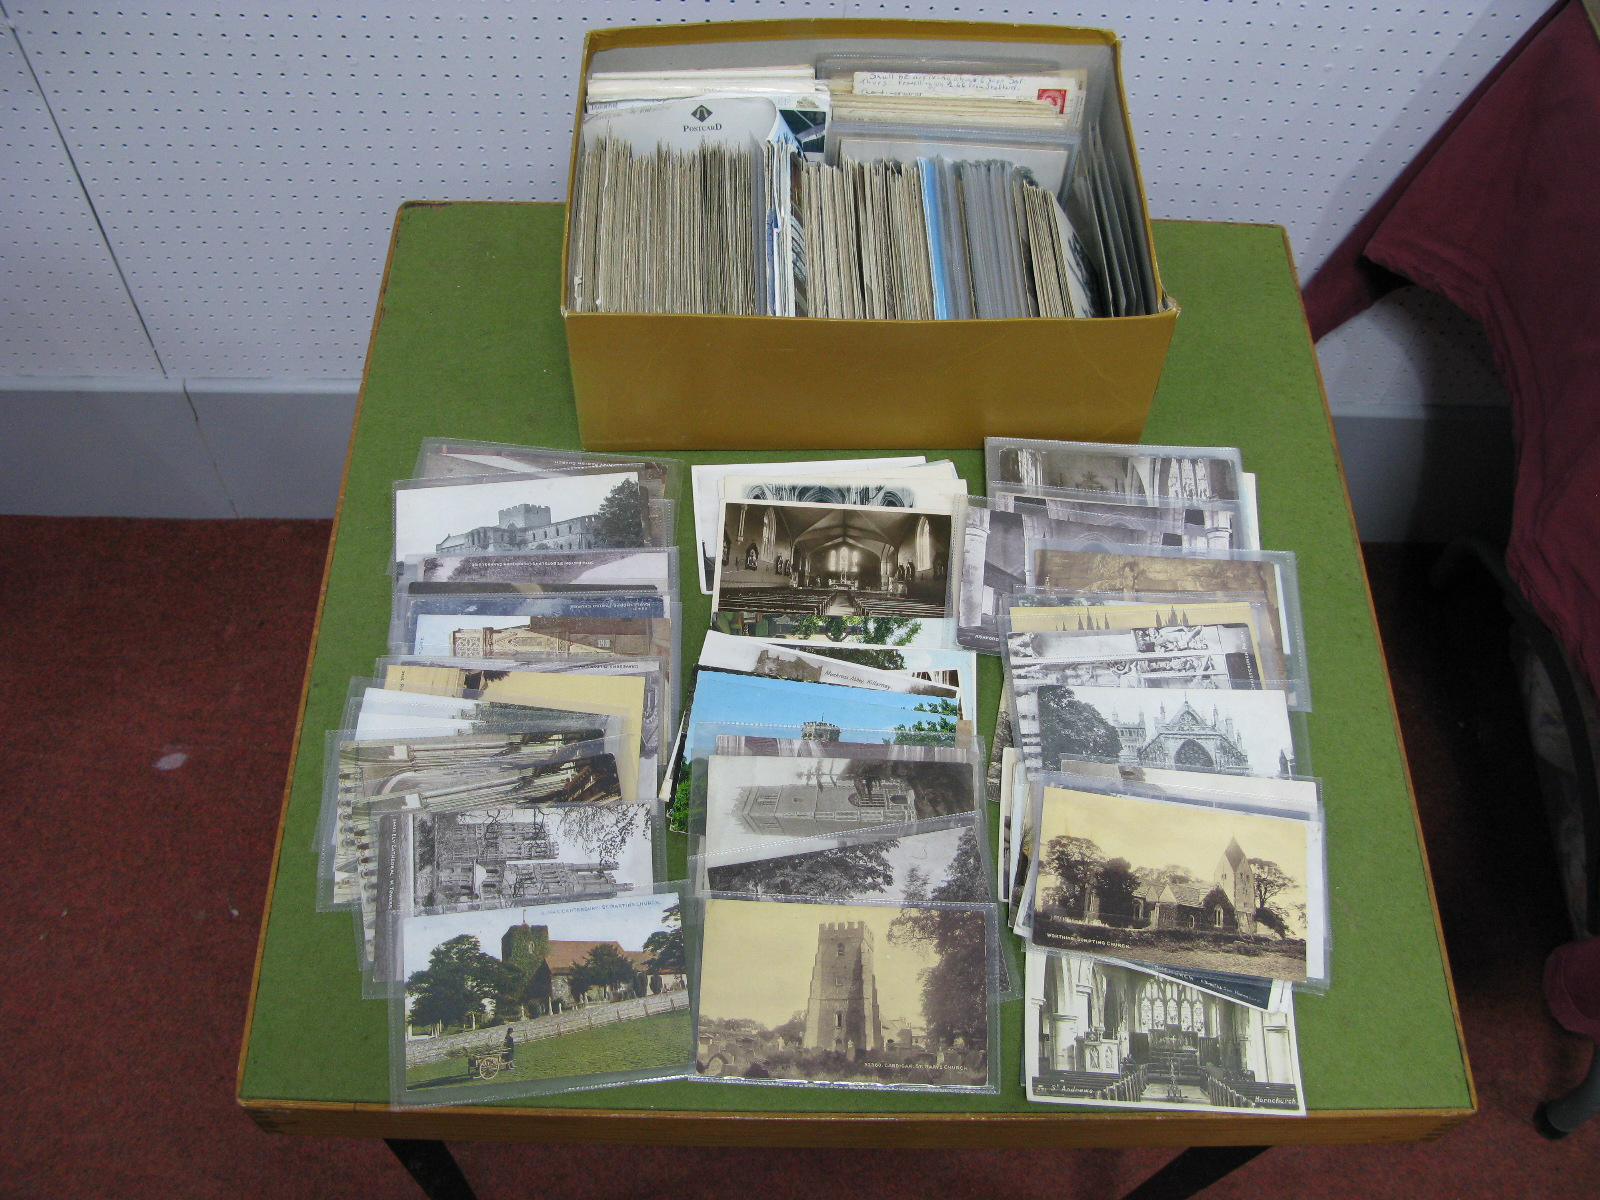 Lot 36 - Picture Postcards Mainly of Churches and Cathedrals From Early XX Century to 1980's, including